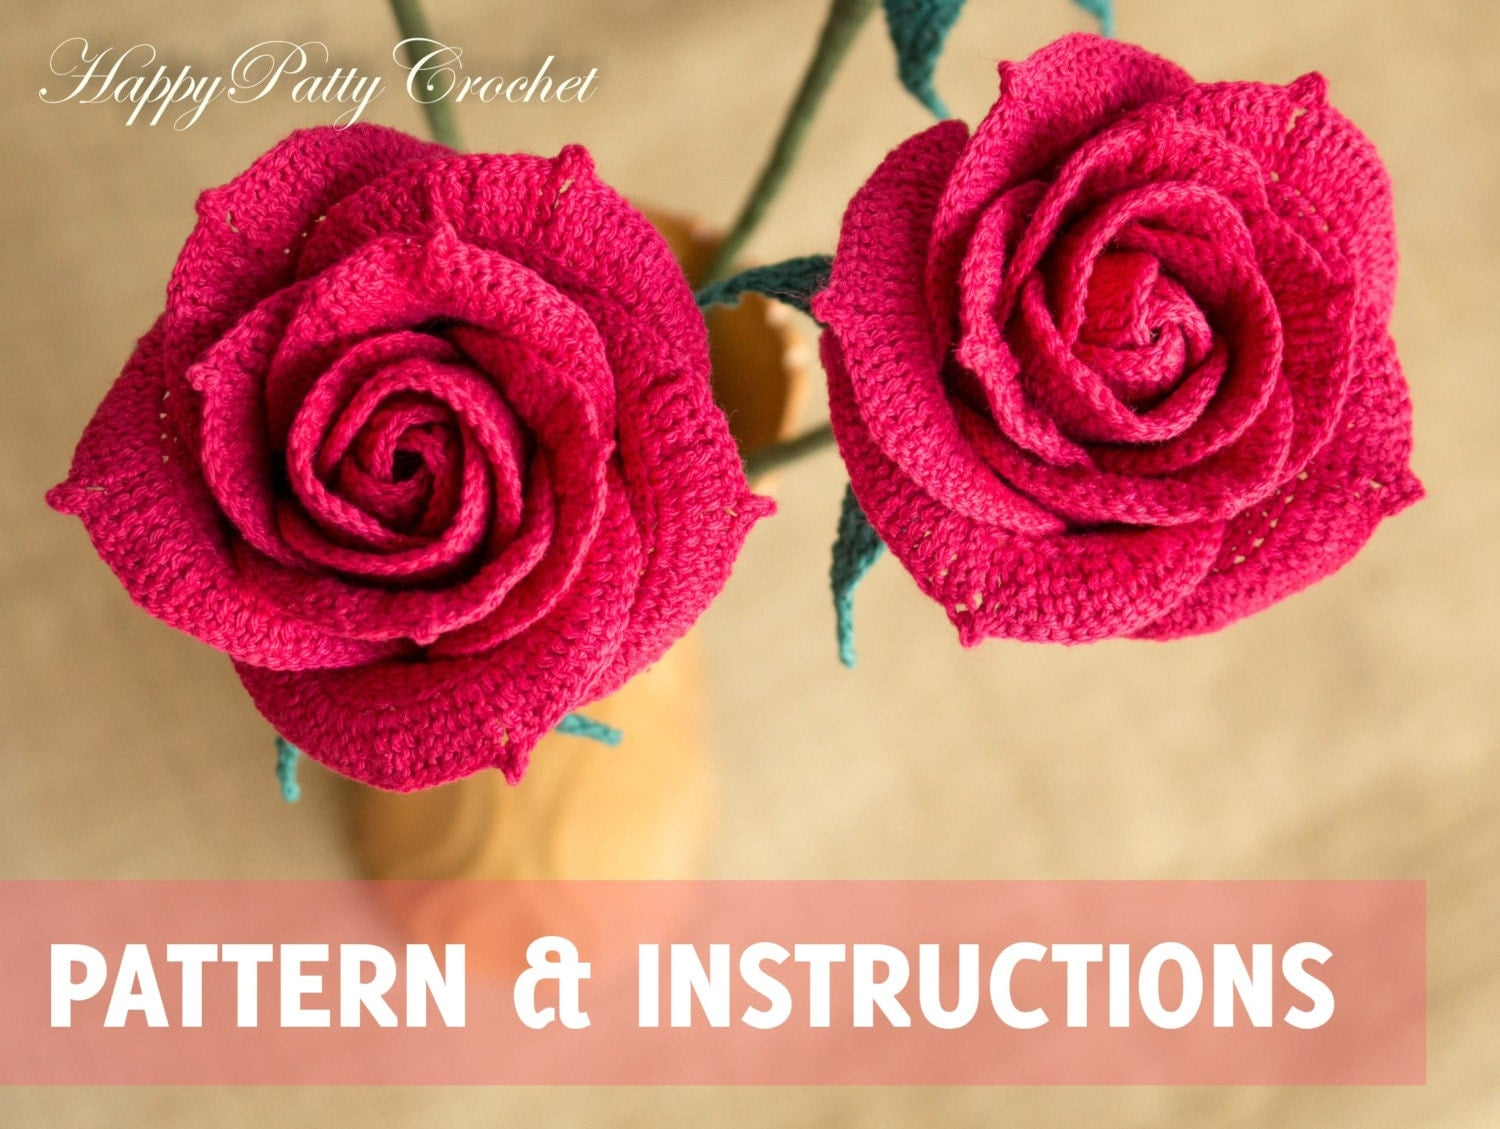 Crochet pattern mini crochet flower pattern small crochet crochet rose pattern crochet flower pattern crochet rose for bouquet and decoration crochet bankloansurffo Images